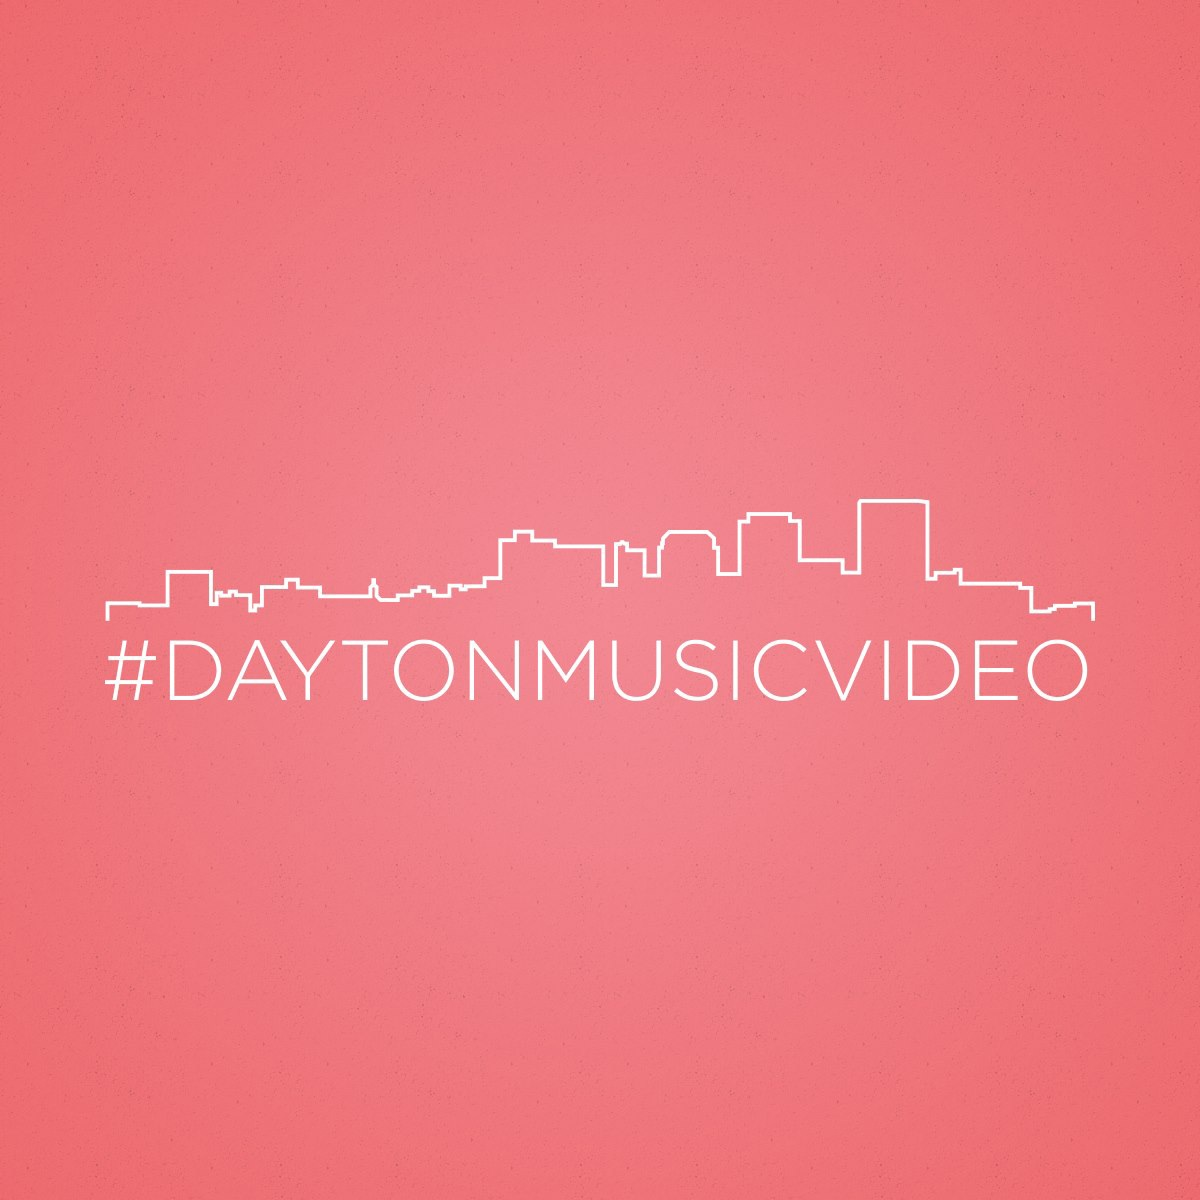 A hashtag design for the Dayton Music Video